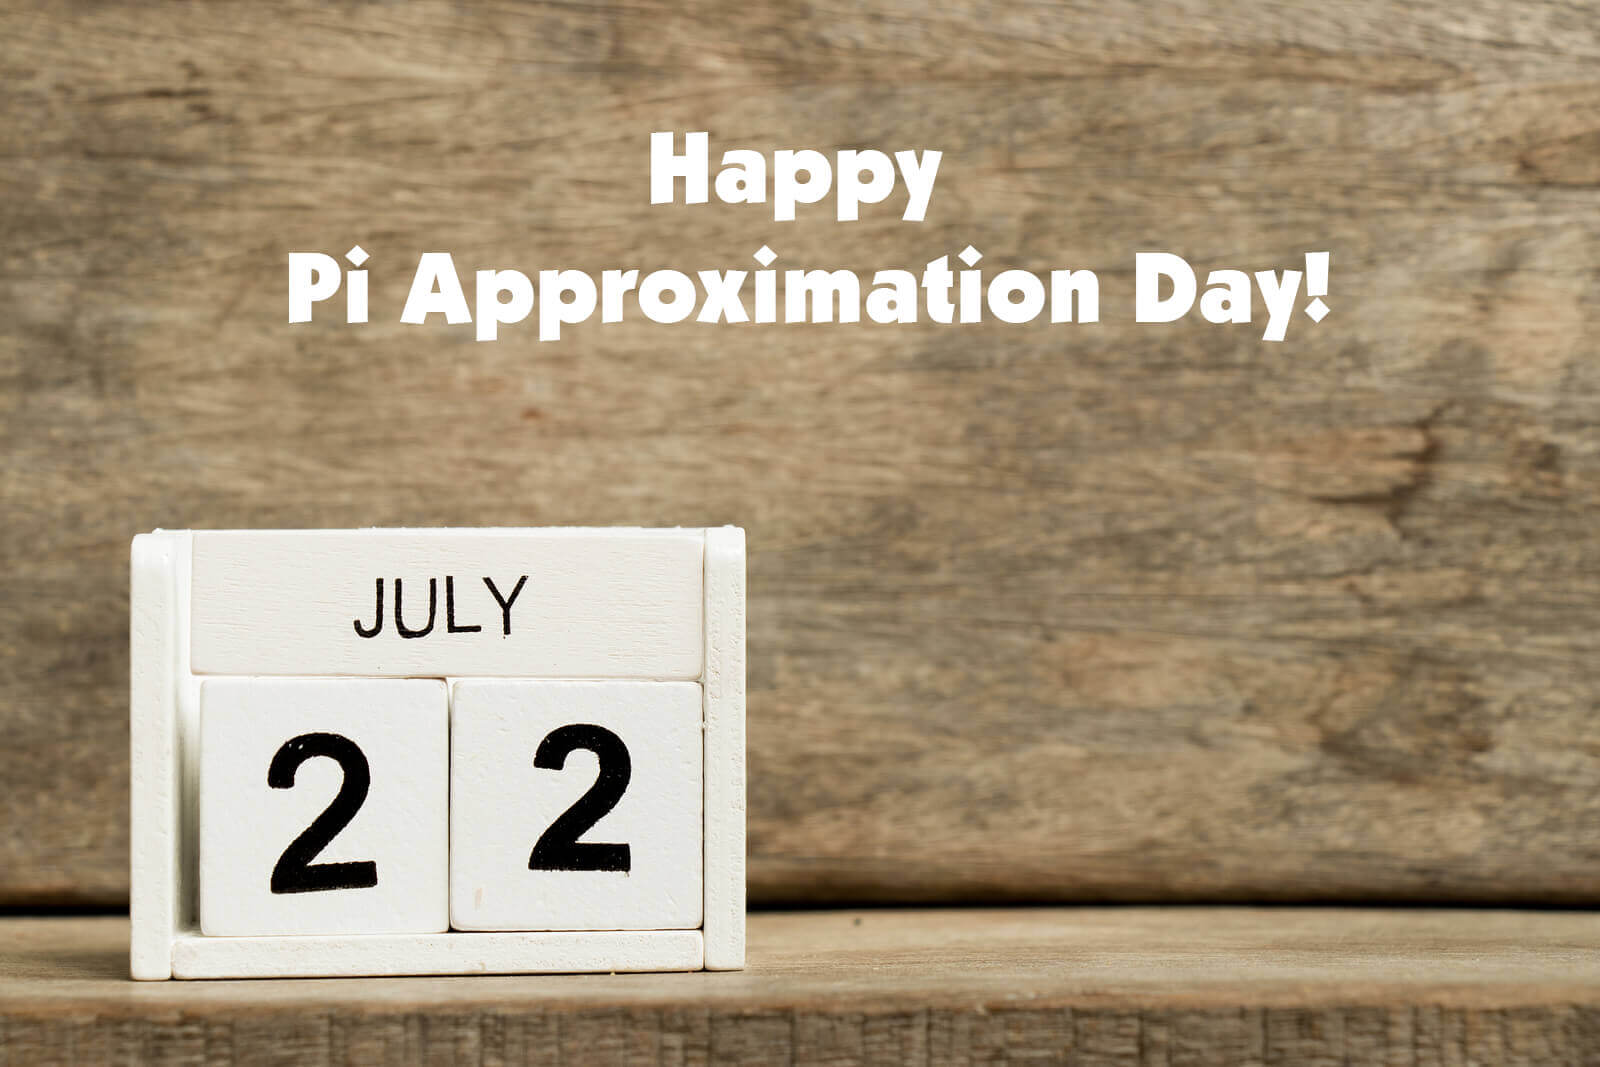 Pi Approximation Day Resources Surfnetkids